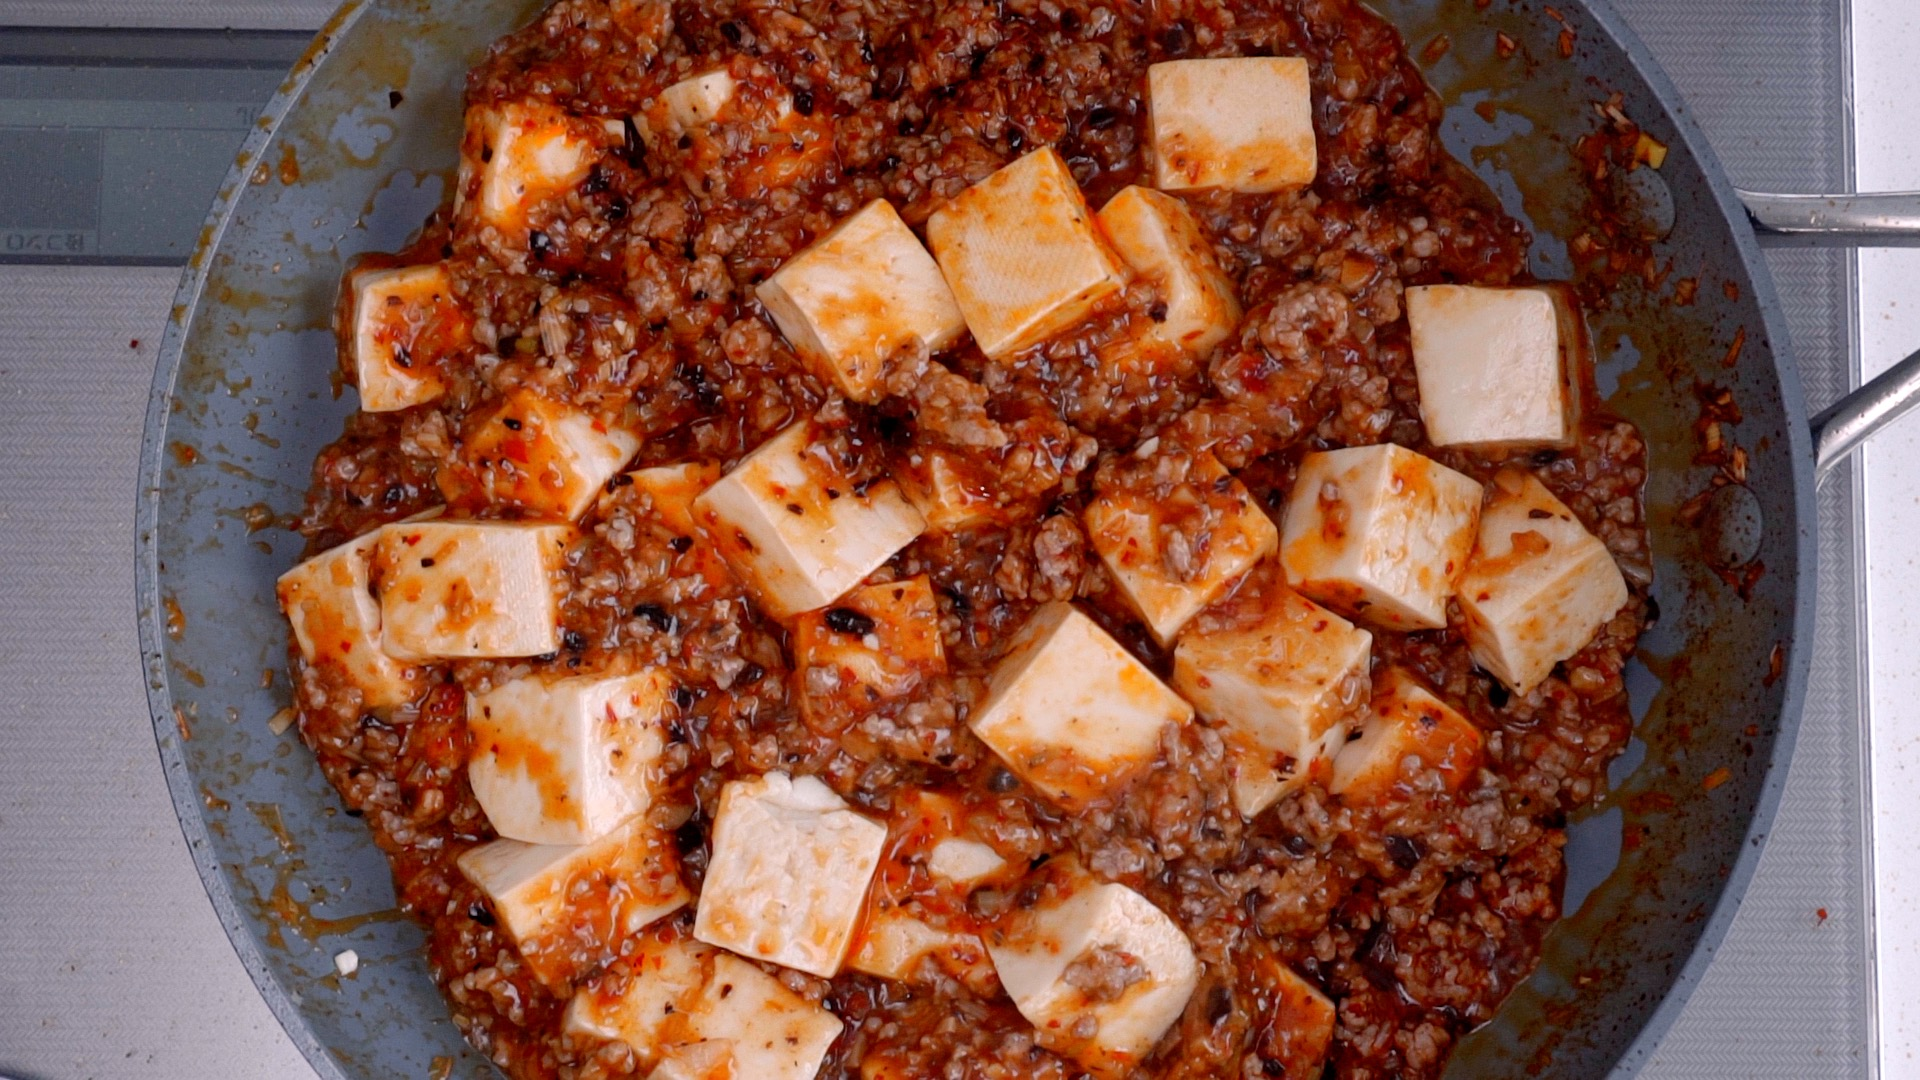 Add the Tofu and simmer together with the sauce.